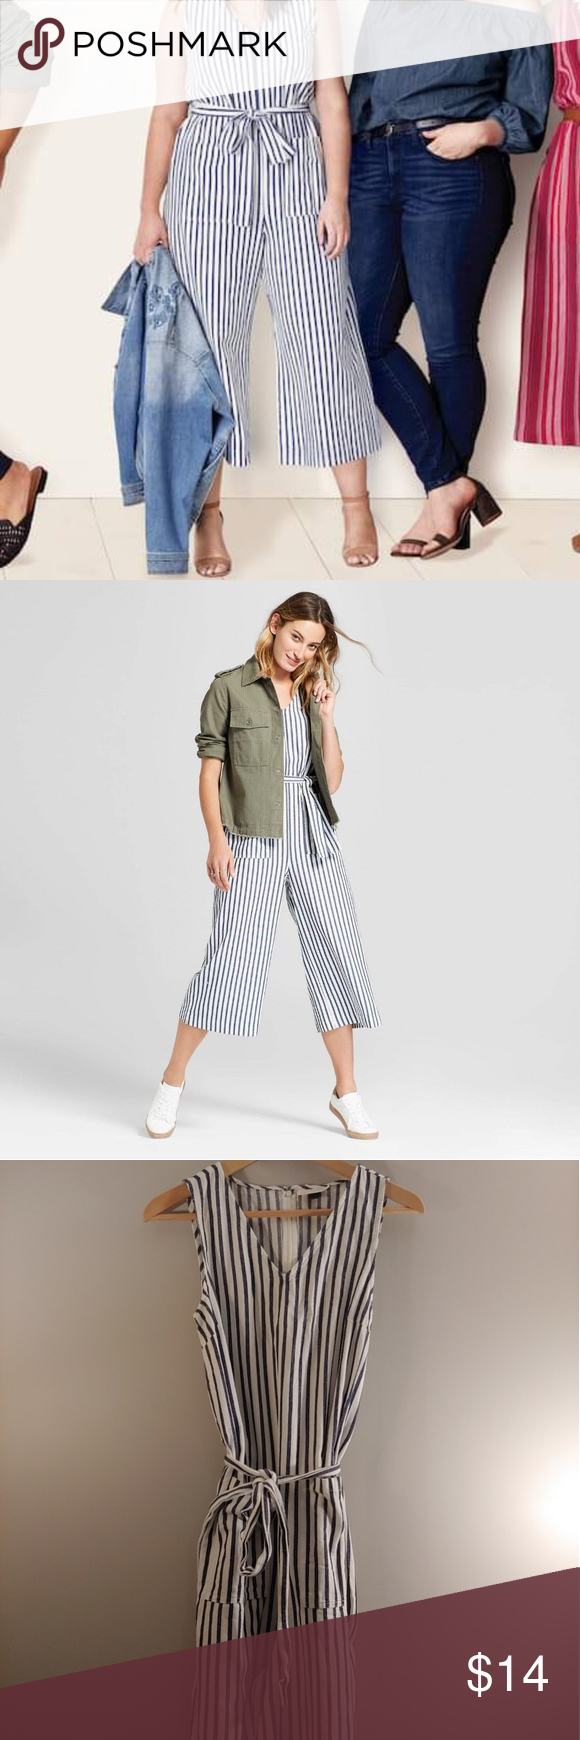 2e0d9c7ff809 Universal Thread Striped Jumpsuit Striped blue v neck jumpsuit Universal  Thread Pants Jumpsuits   Rompers